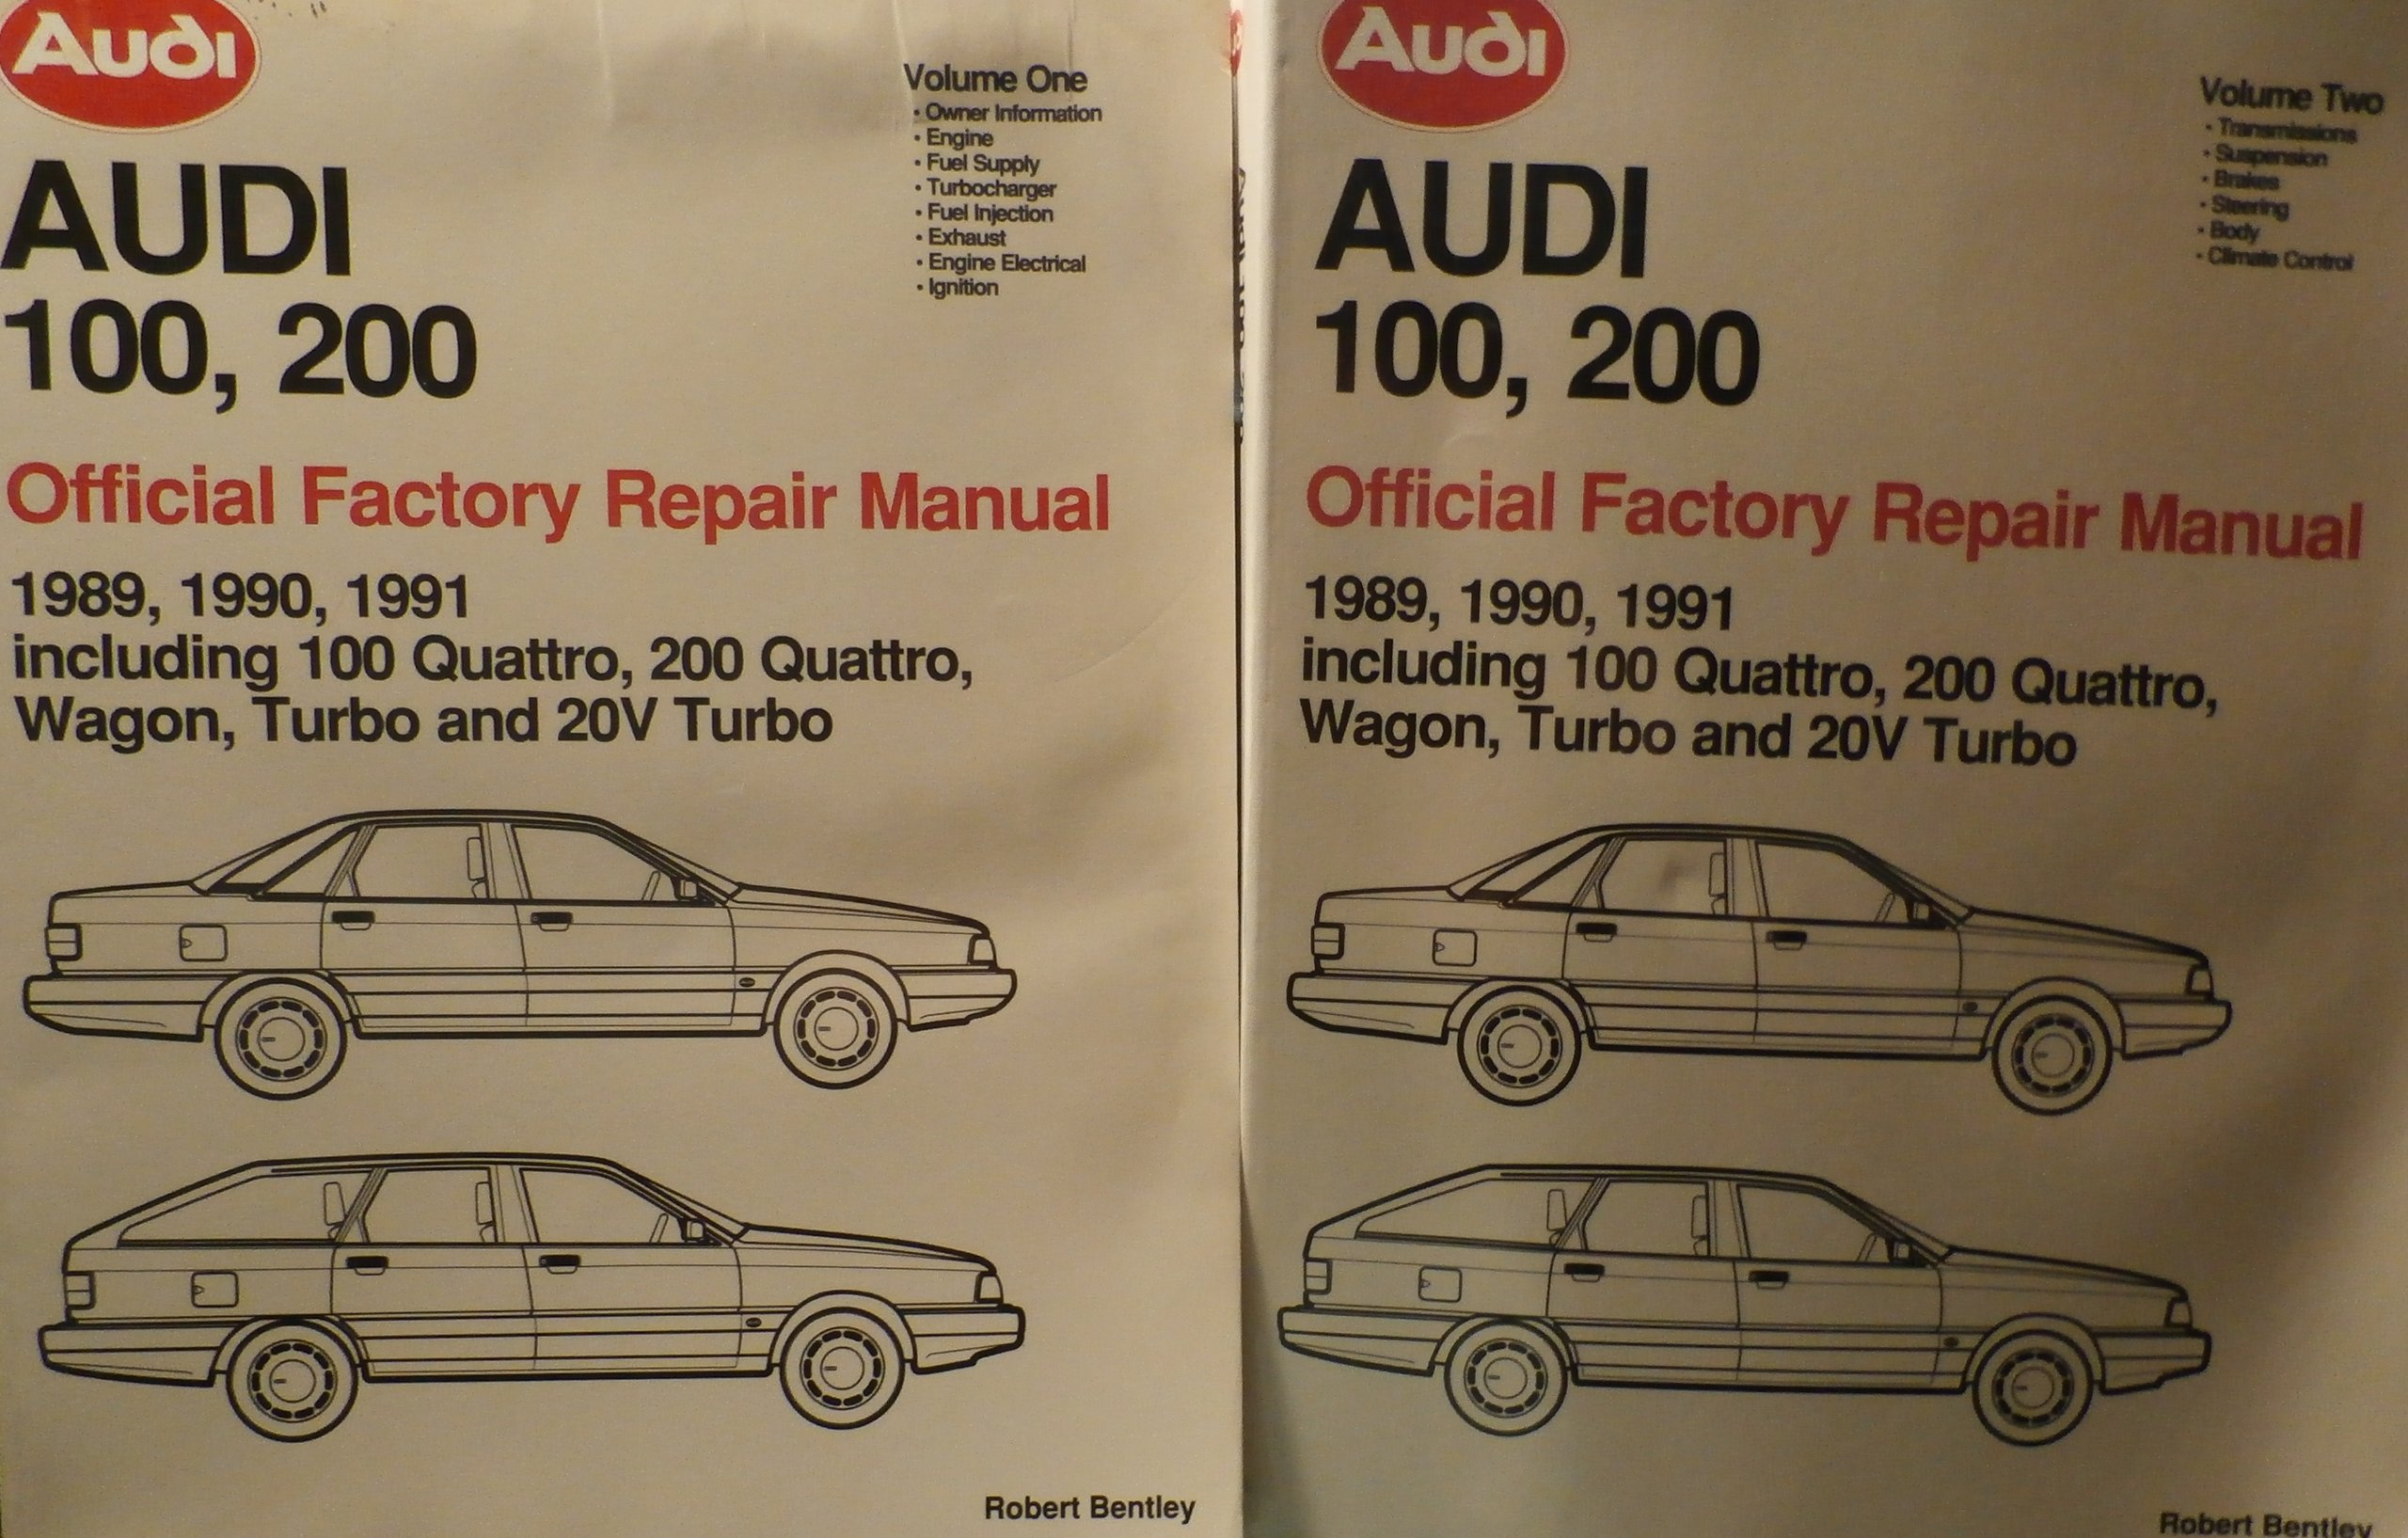 TWO Volume Set: Audi 100, 200 Official Factory Repair Manual 1989, 1990, 1991 Including 100 Quattro, 200 Quattro, Wagon, Turbo and 20V Turbo: Robert ...